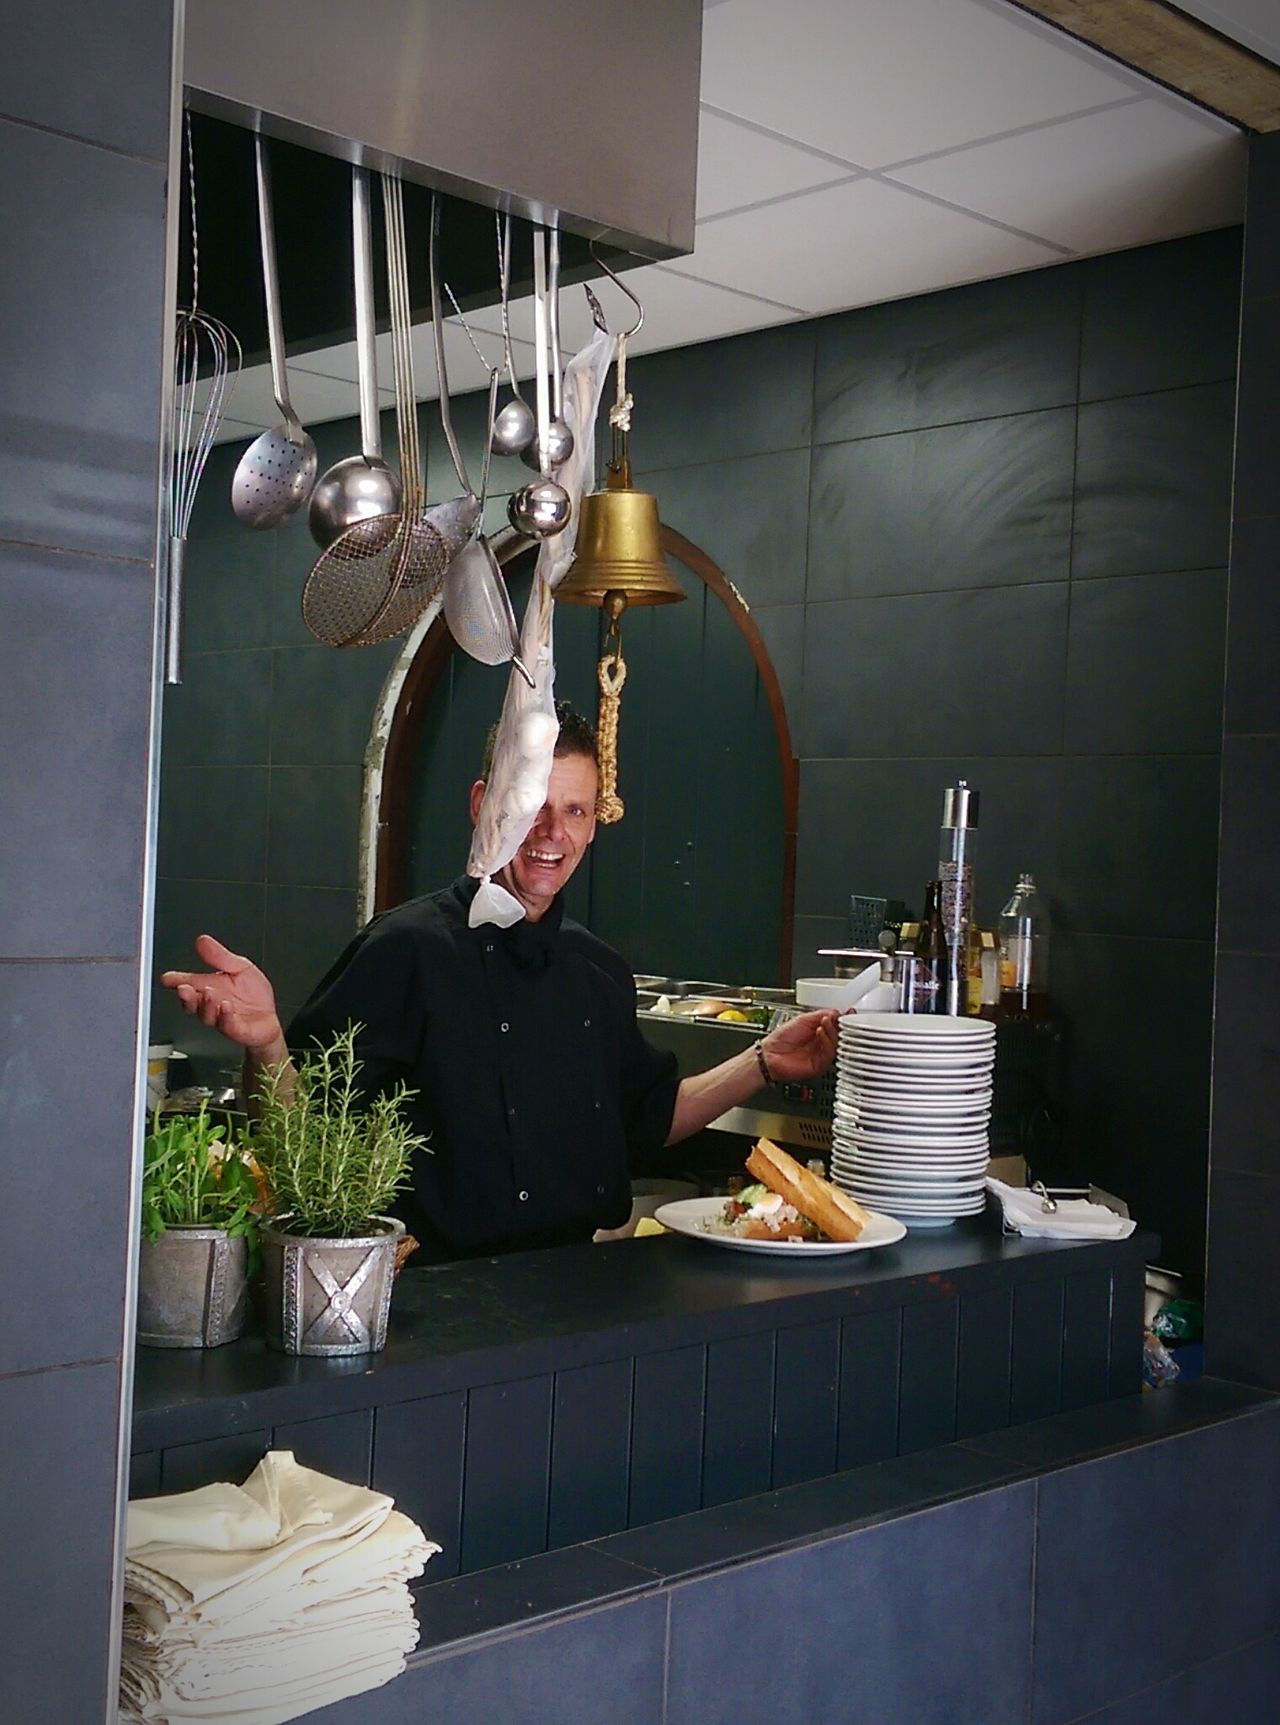 KitchenBoss In The Job cook Fresh Produce Loving His Job!! Restaurant/ partycentrum De sluis ,Weert